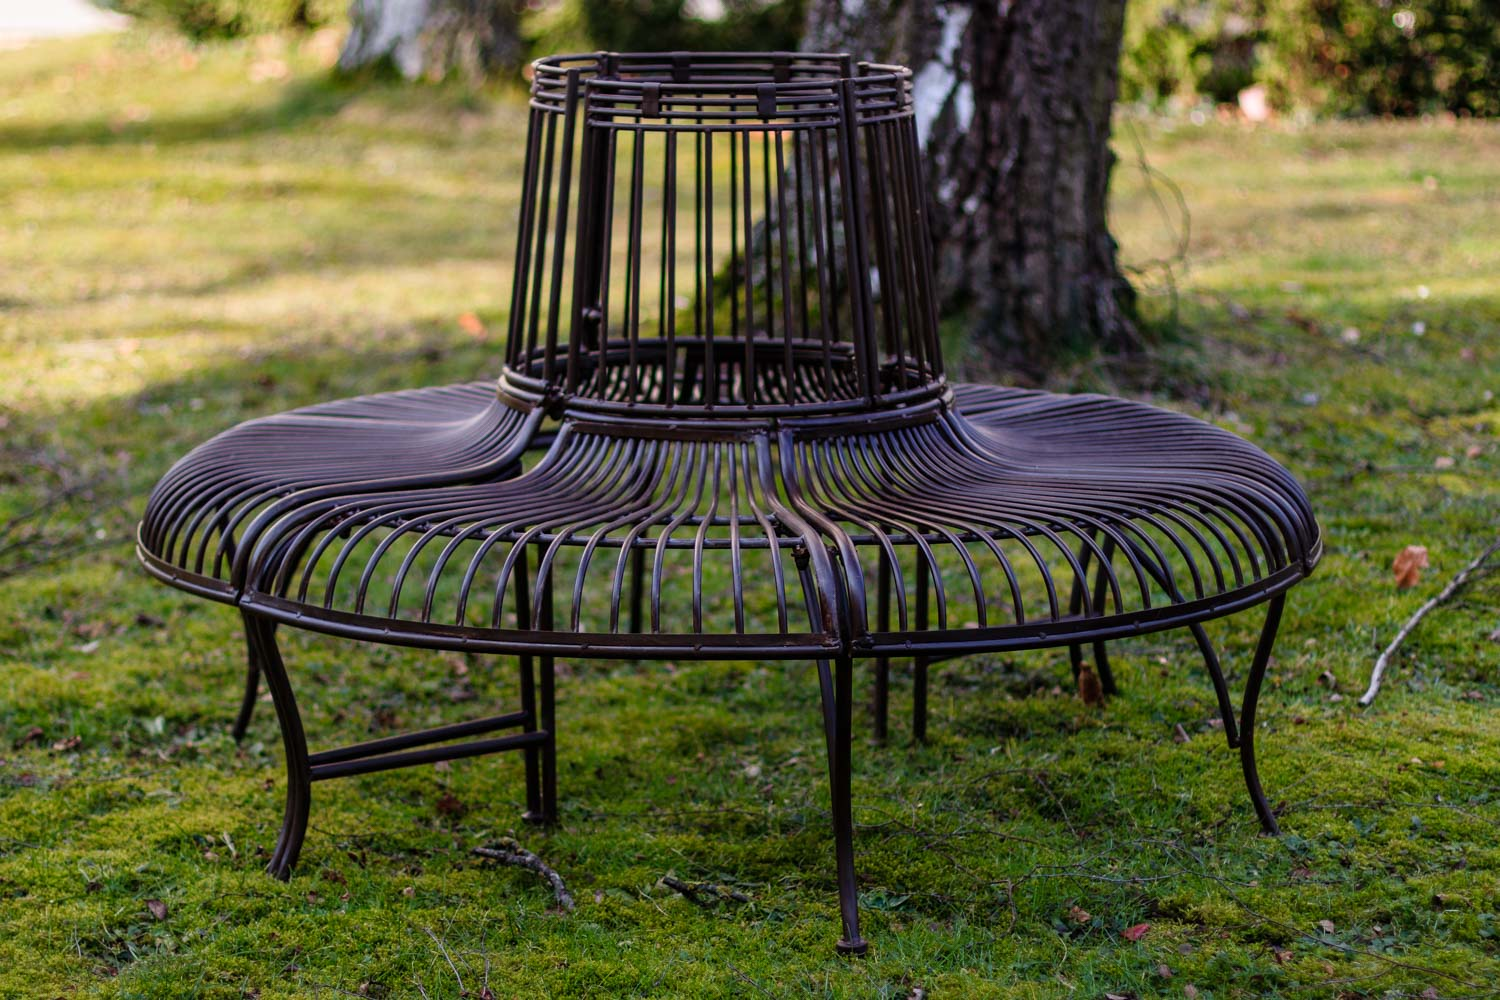 Gartenmetall.de Antique Style Garden Tree Bench Set Metal Iron Brown Furniture Park Nostalgic